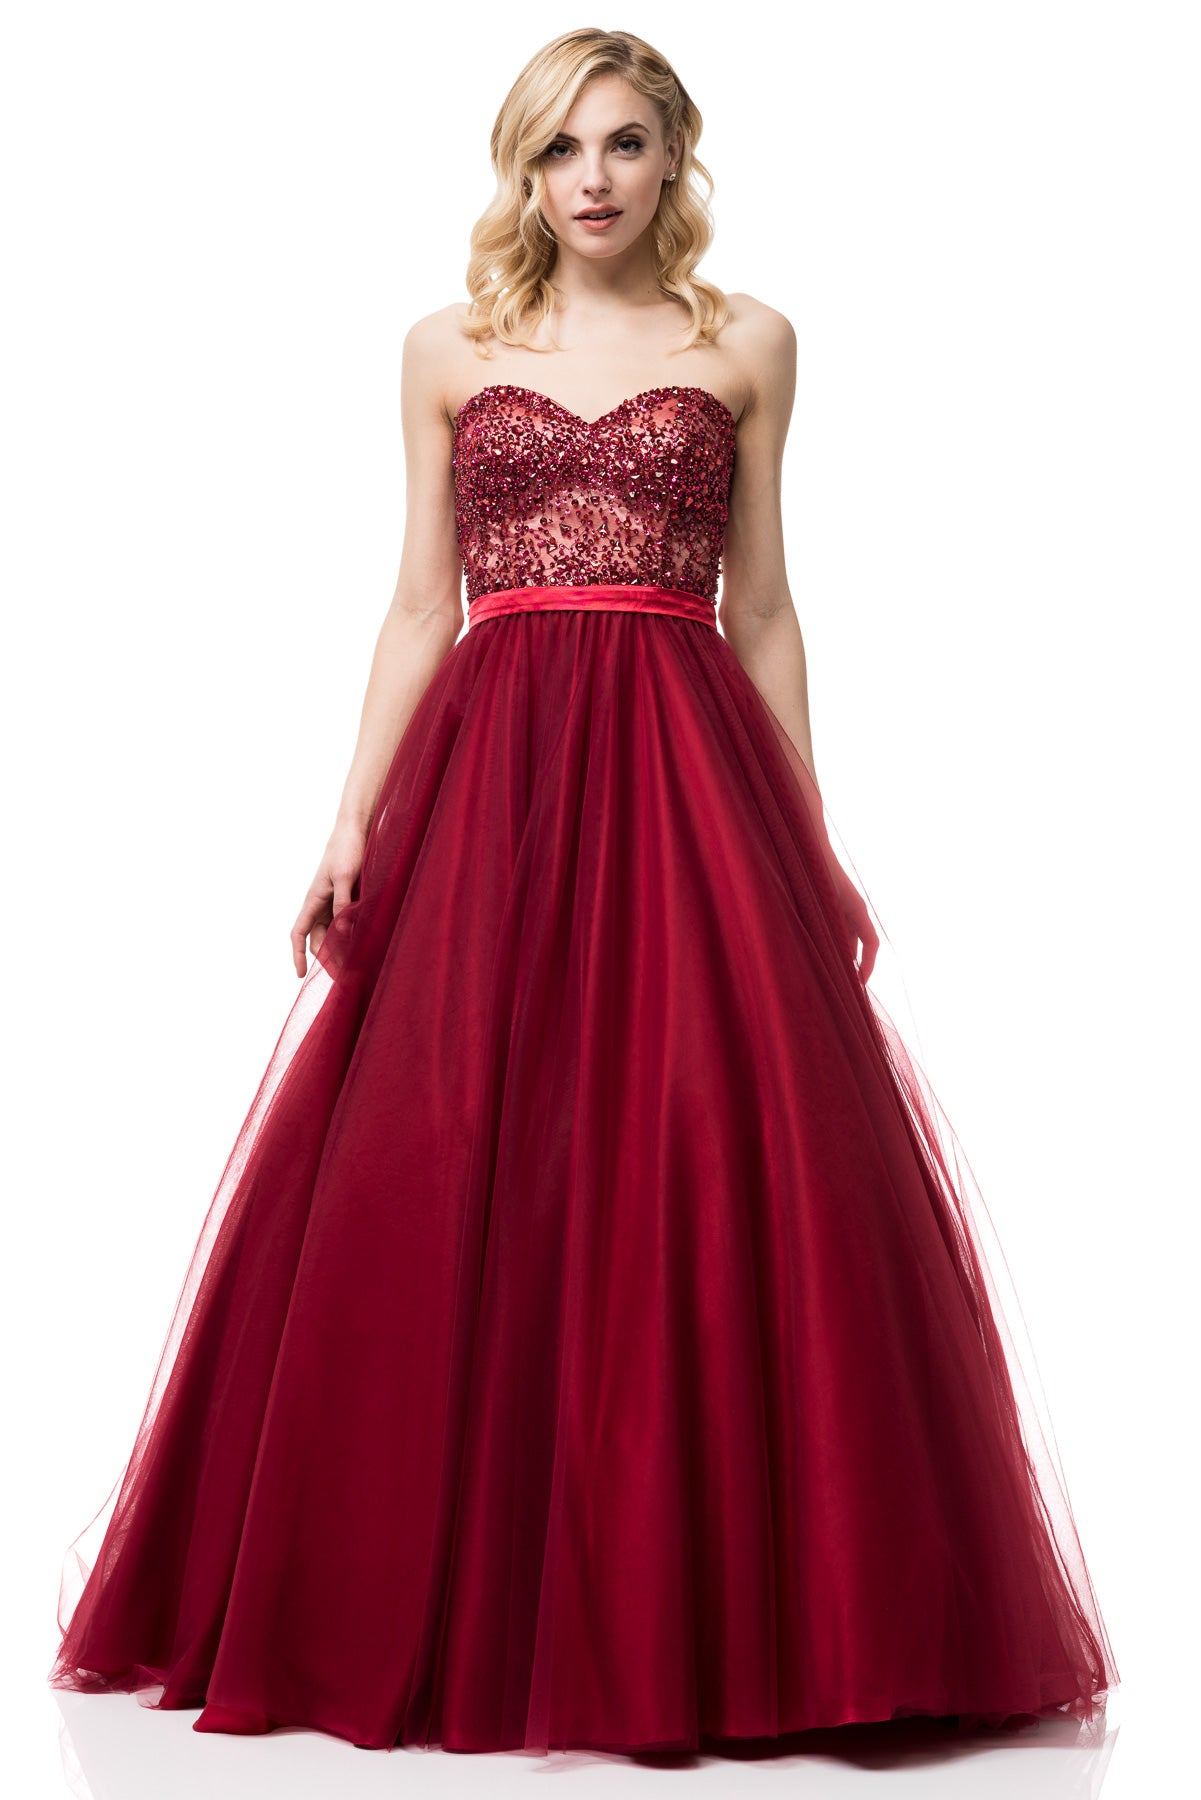 Ball Gowns, Formal Gowns & Black Tie Gowns – BICICI & COTY